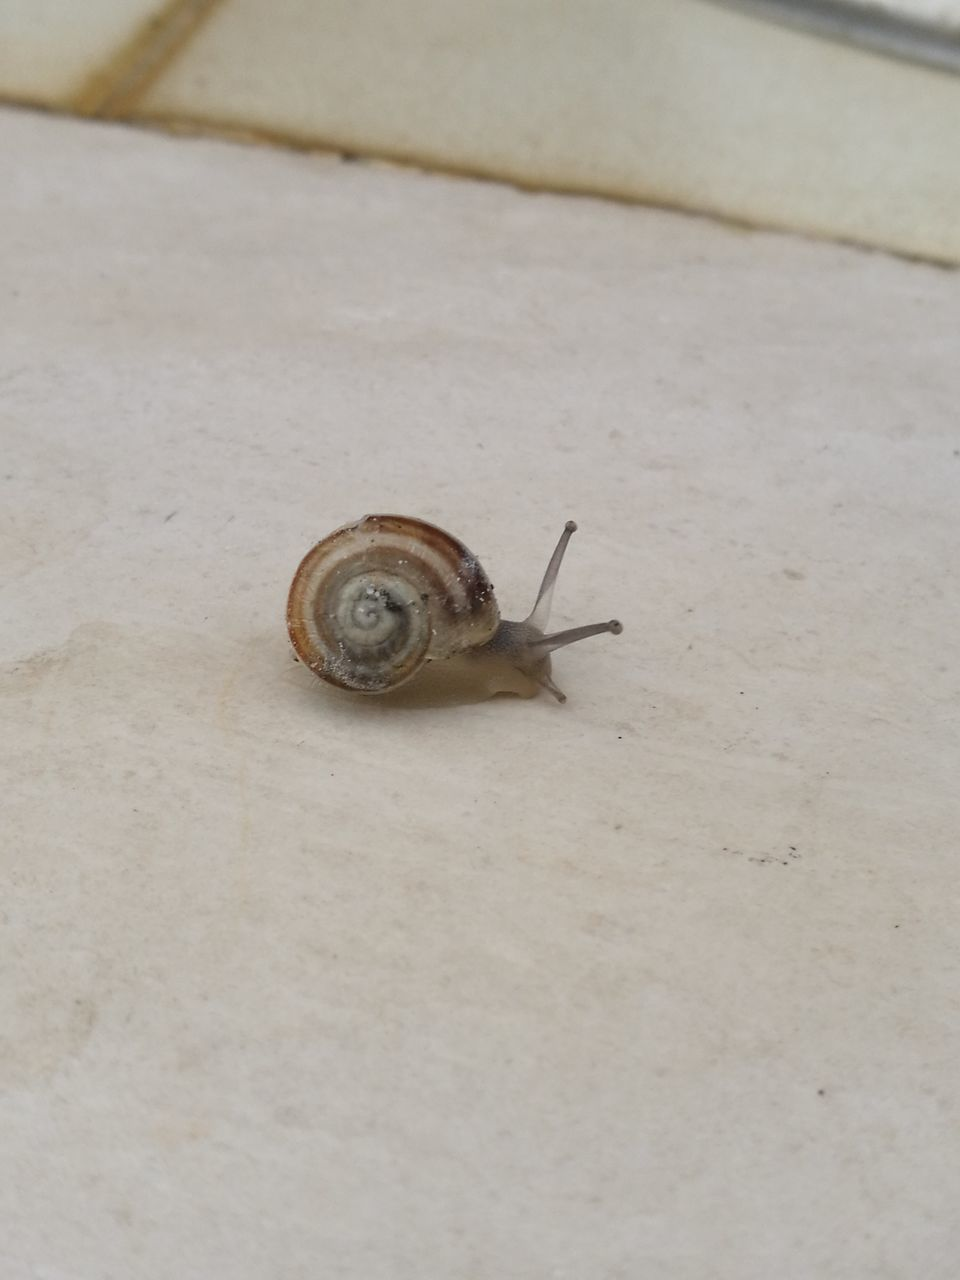 snail, one animal, animal themes, gastropod, wildlife, animals in the wild, fragility, close-up, nature, day, no people, outdoors